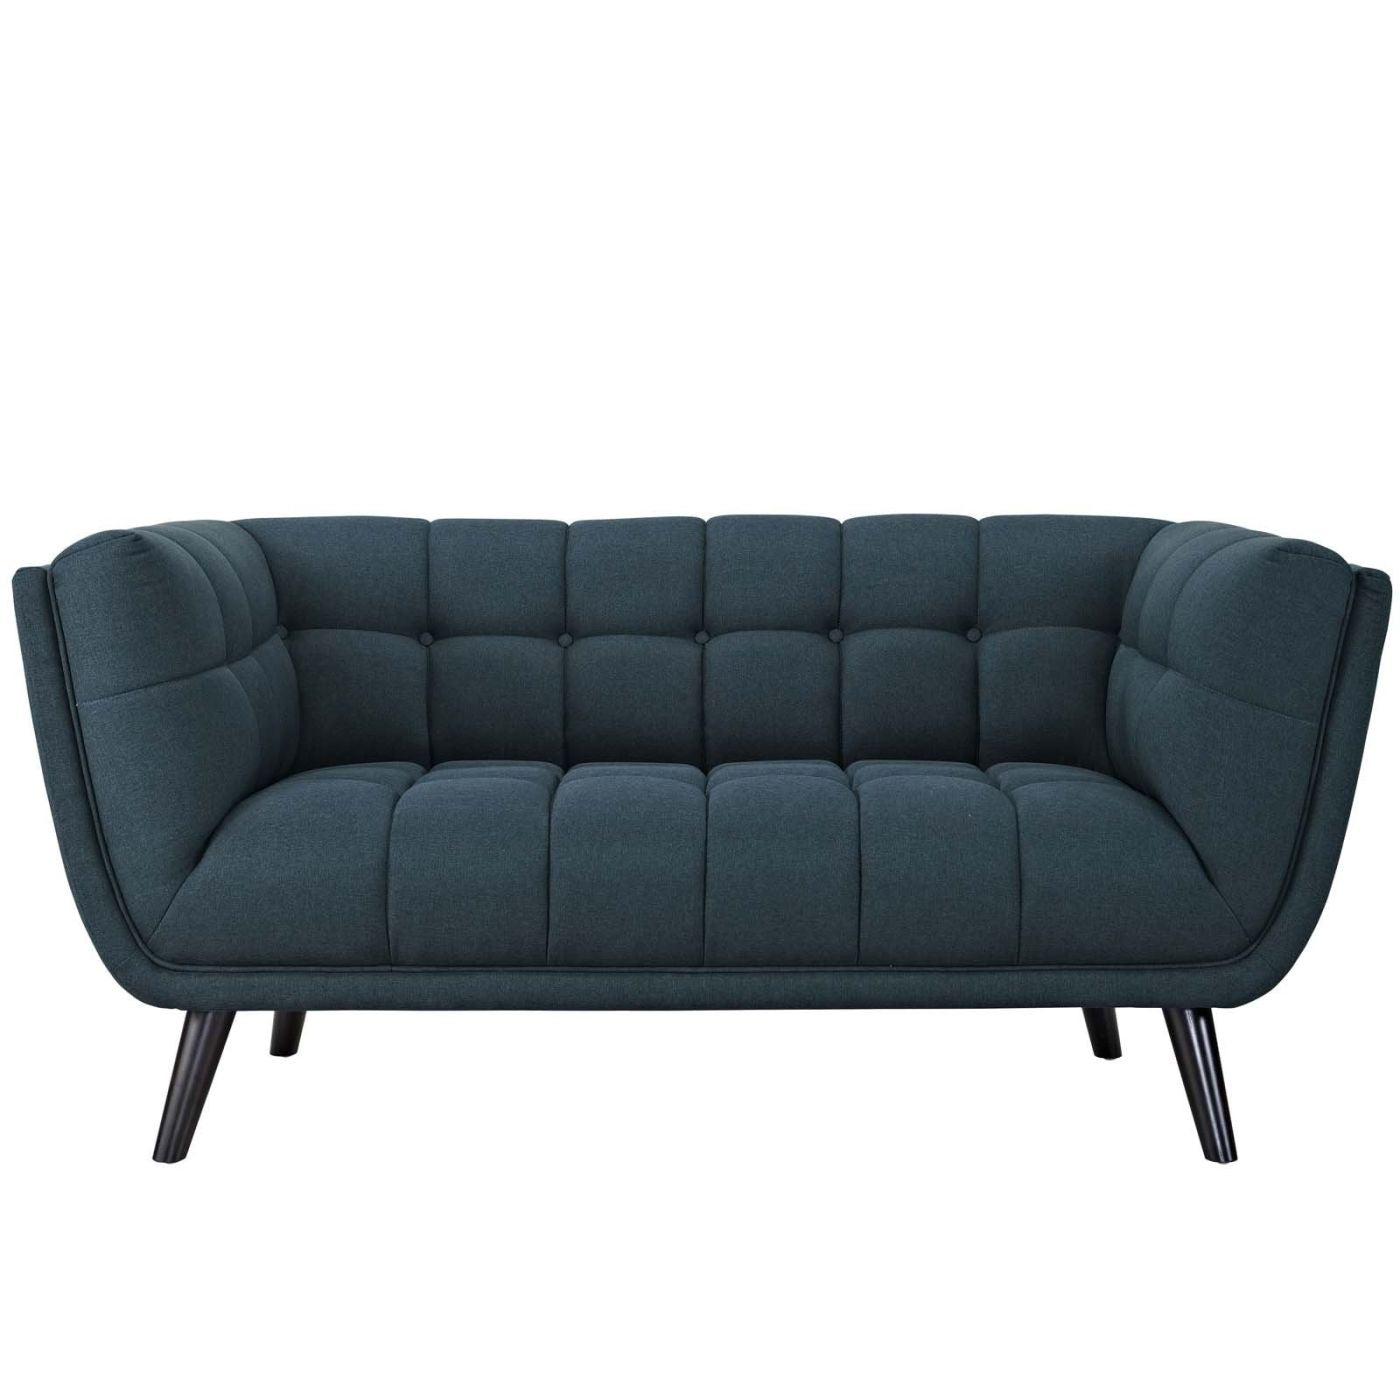 Modway Bestow Upholstered Fabric Loveseat Eei 2534 Blu Only At Contemporary Furniture